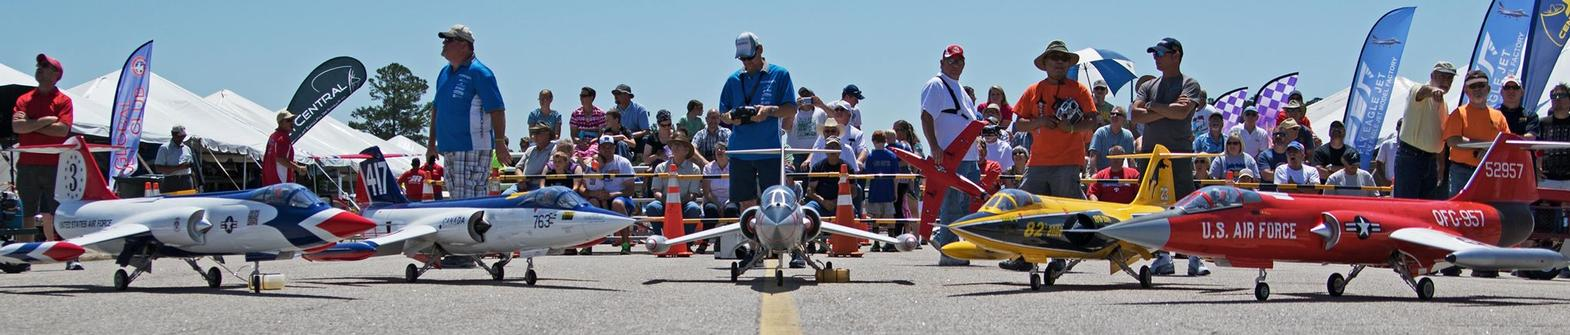 The annual RC Jet Rally in Wilson is organized by First in Flight RC. Photo Source: First in Flight RC, Wilson NC.